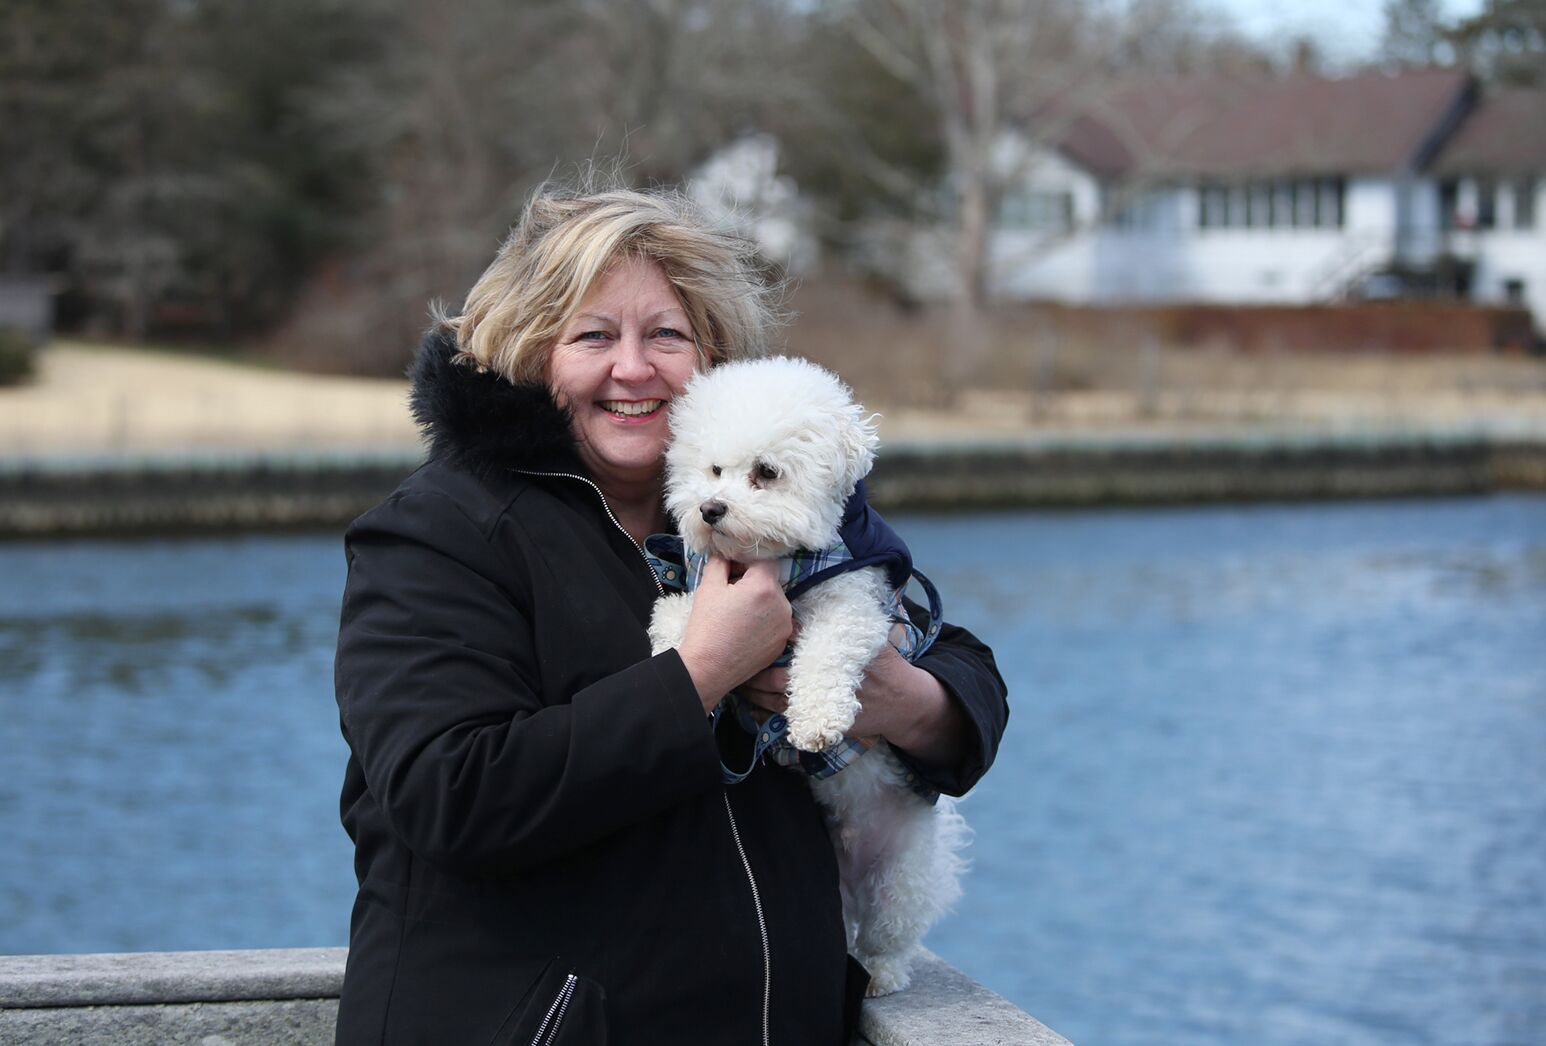 Middle-aged, blonde-haired woman standing next to a lake, holding a white dog on a winter day.